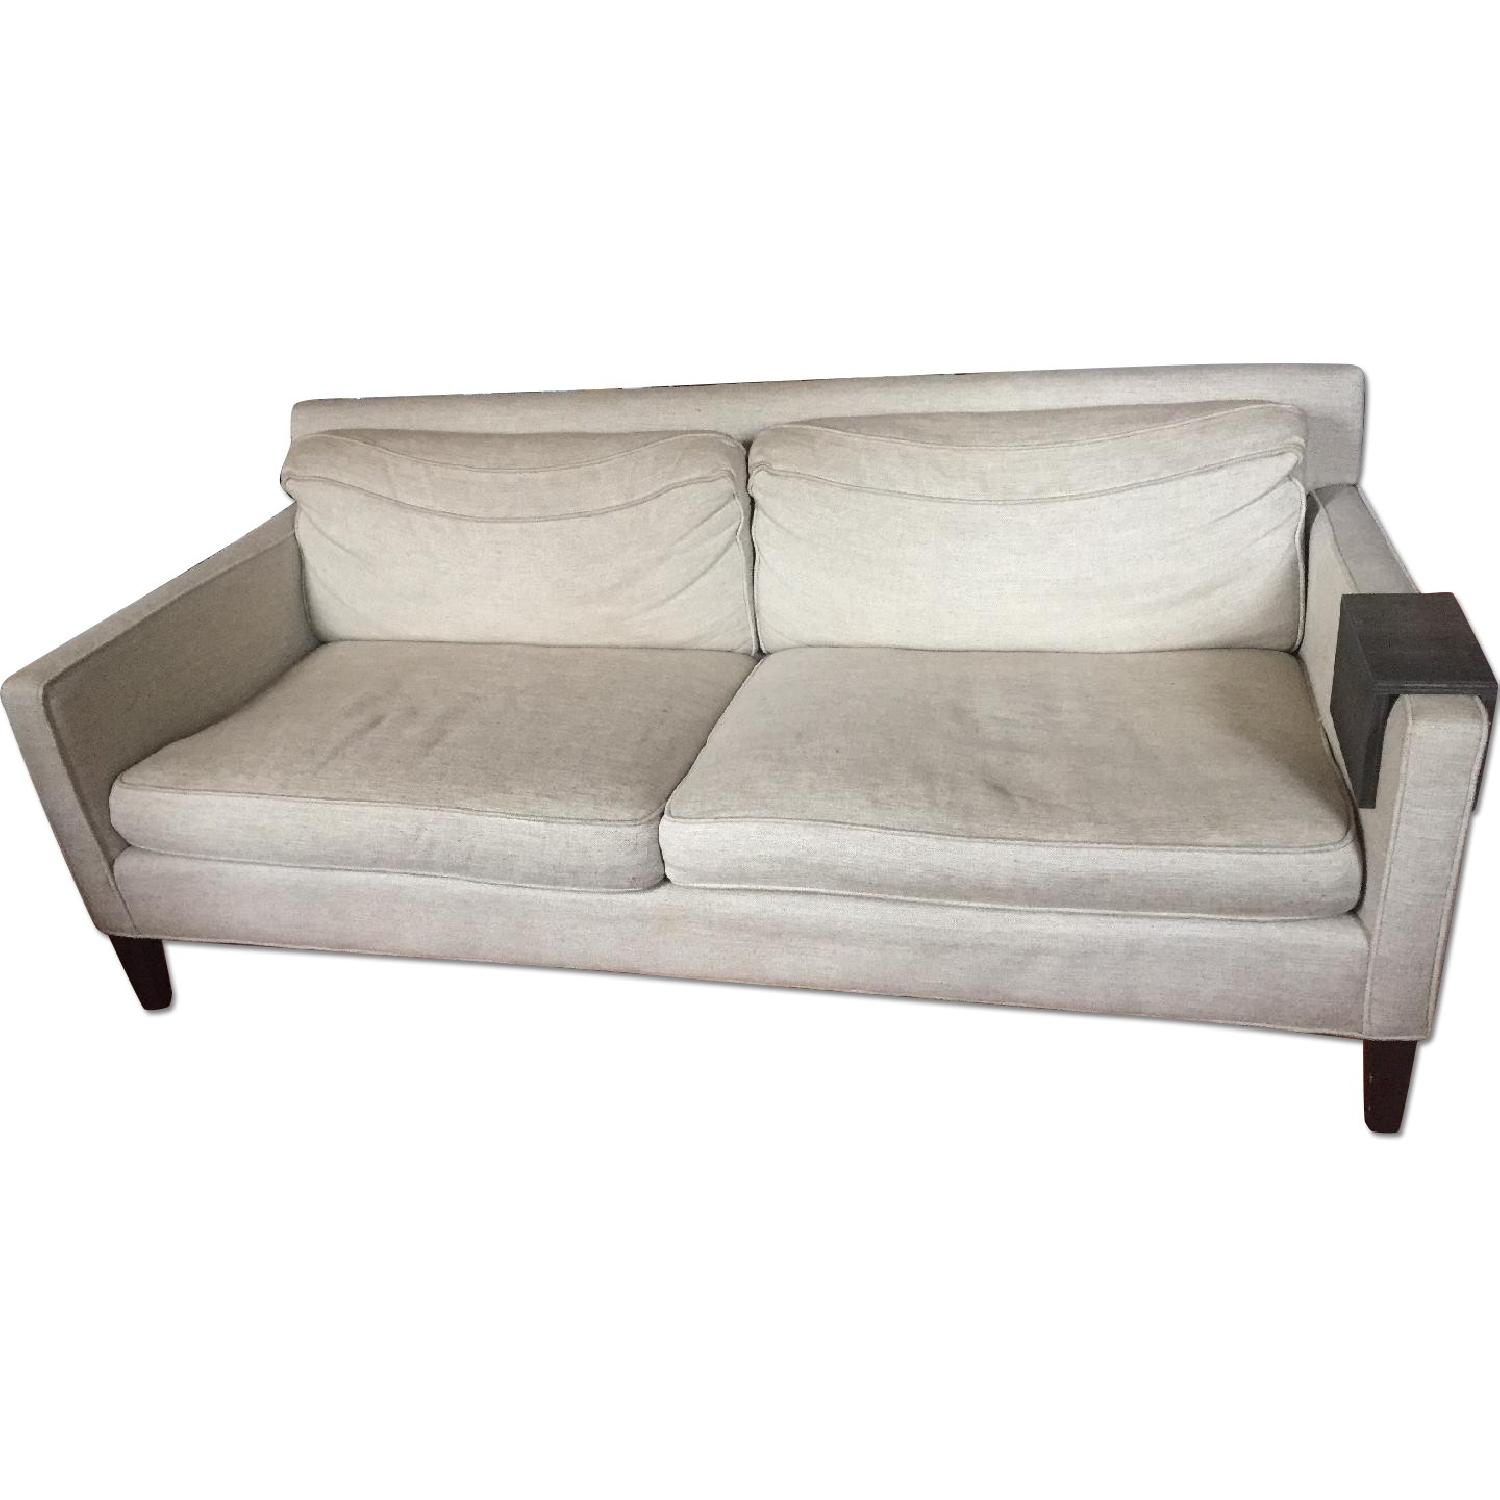 Crate & Barrel Tan Sofa